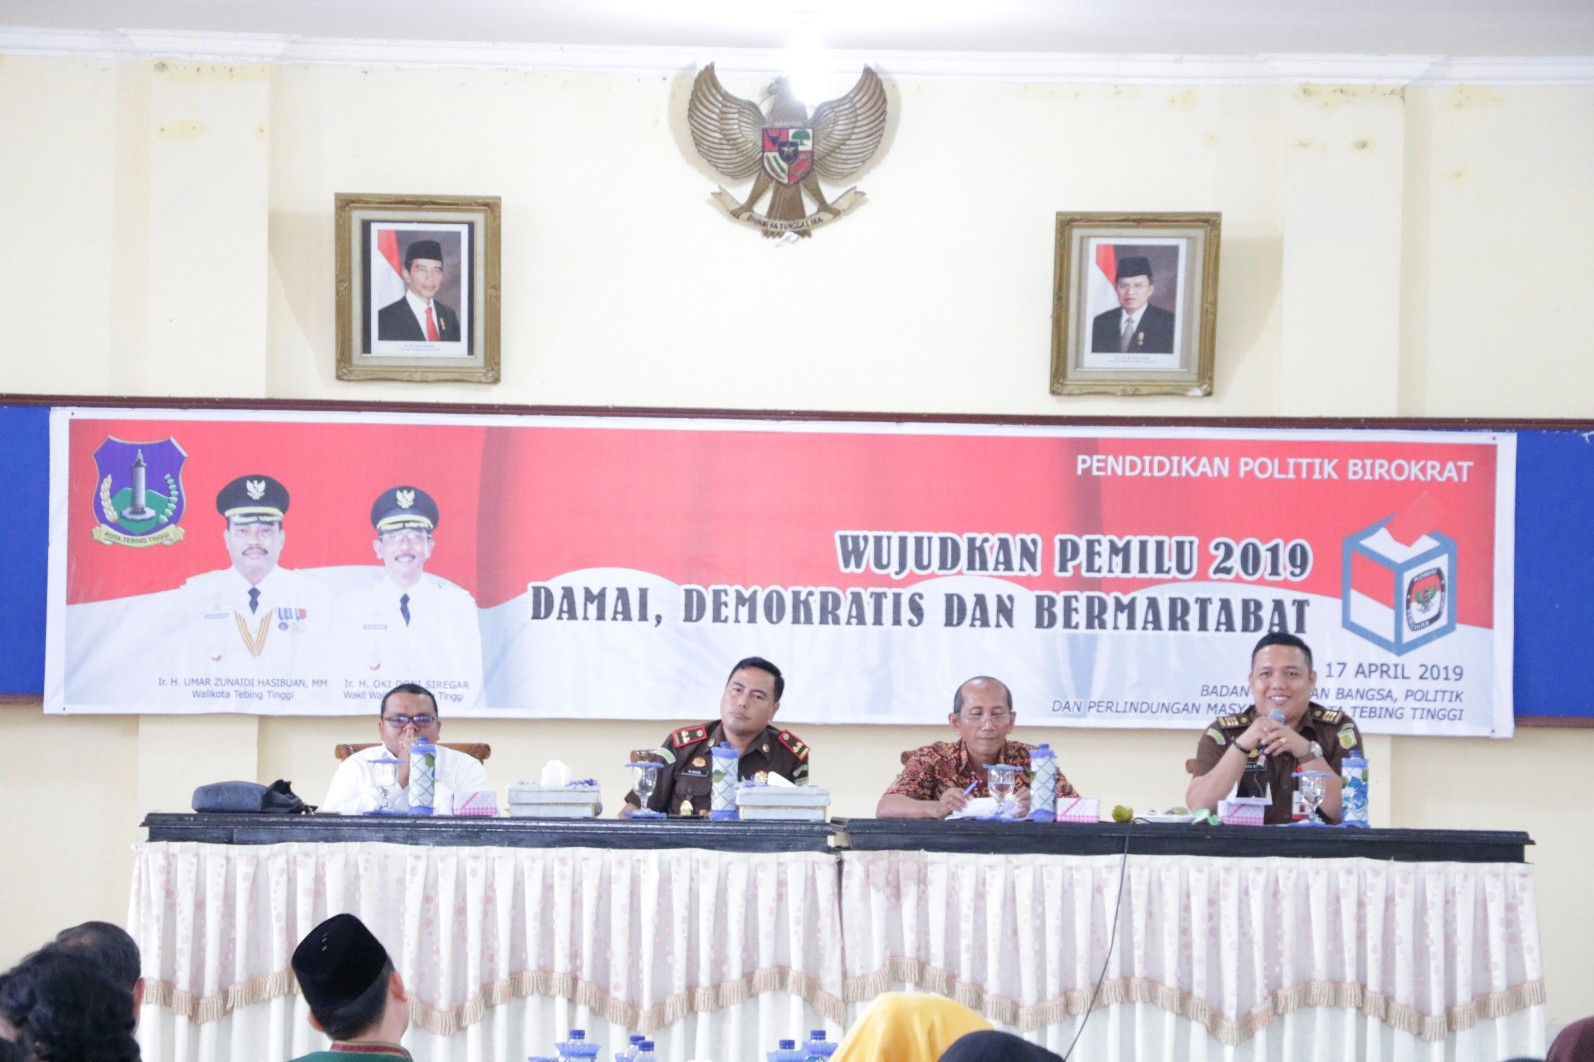 /photos/shares/berita_foto/november/BIROKRAT/_MG_0045.JPG